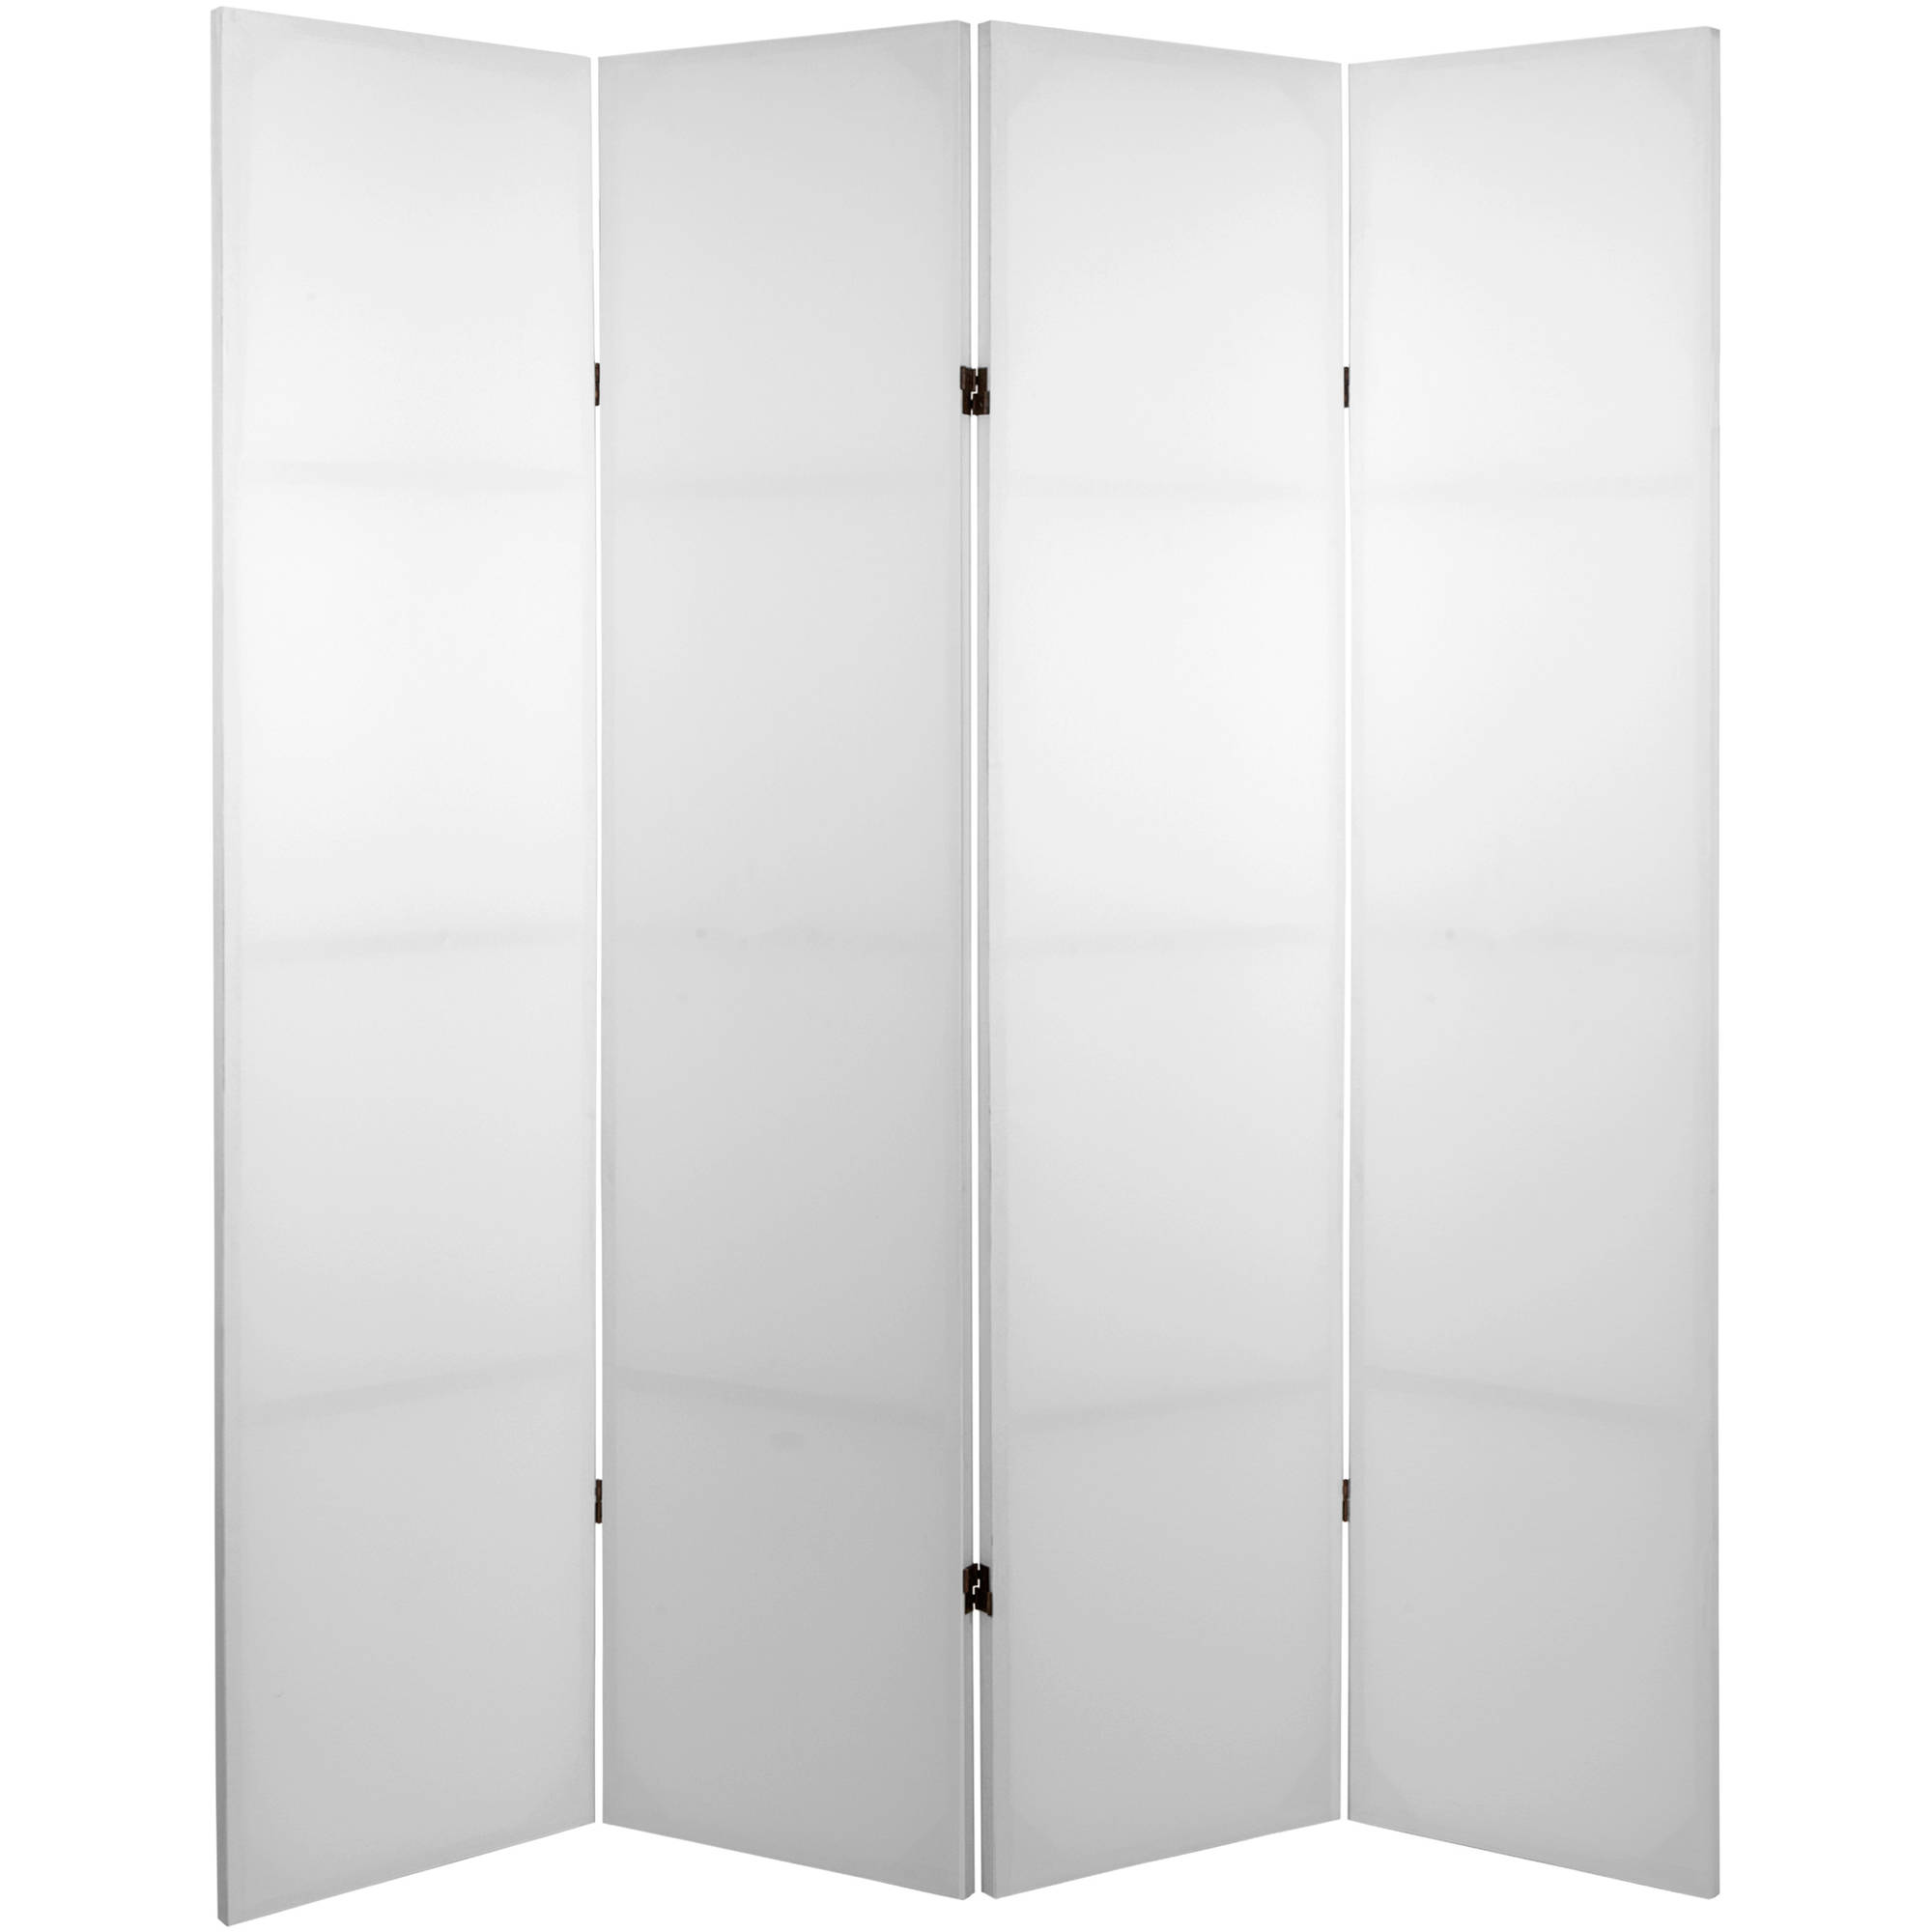 6' Tall Do It Yourself Canvas Room Divider